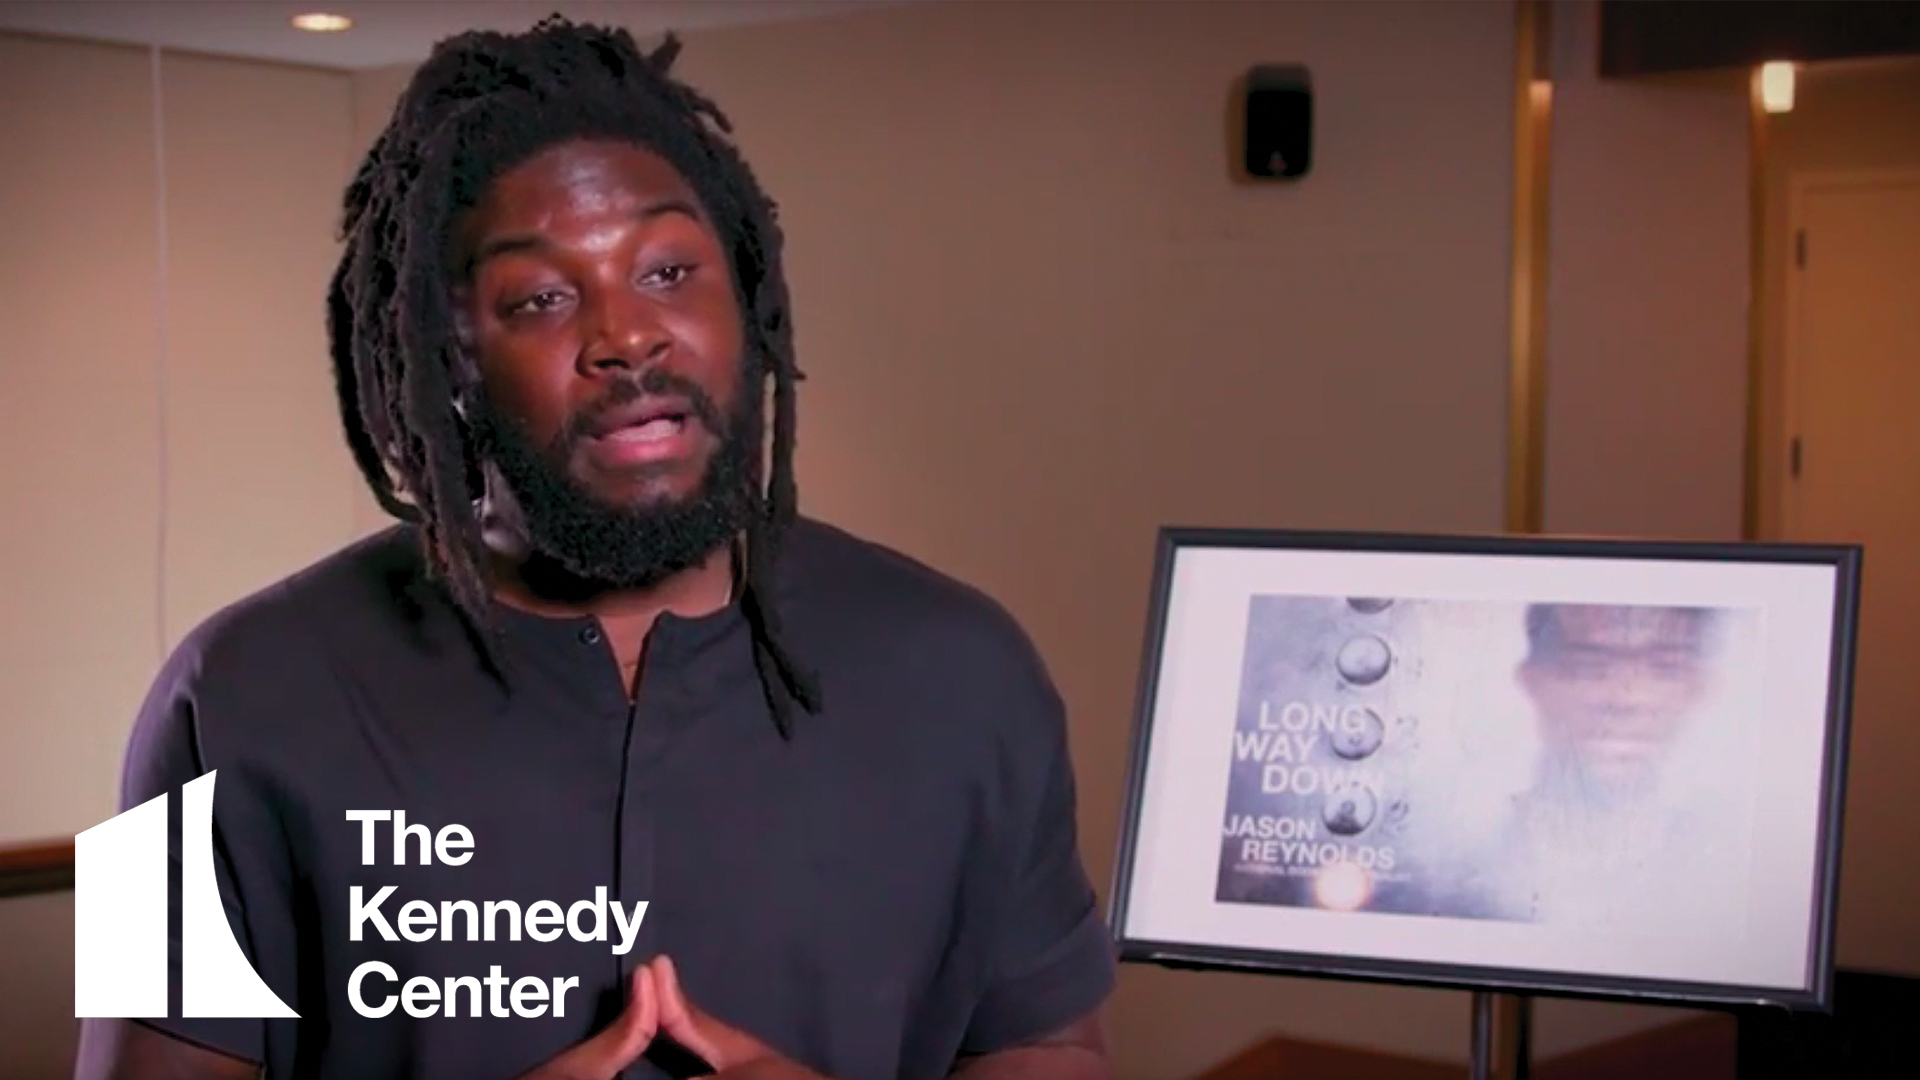 Jason Reynolds, author of Long Way Down